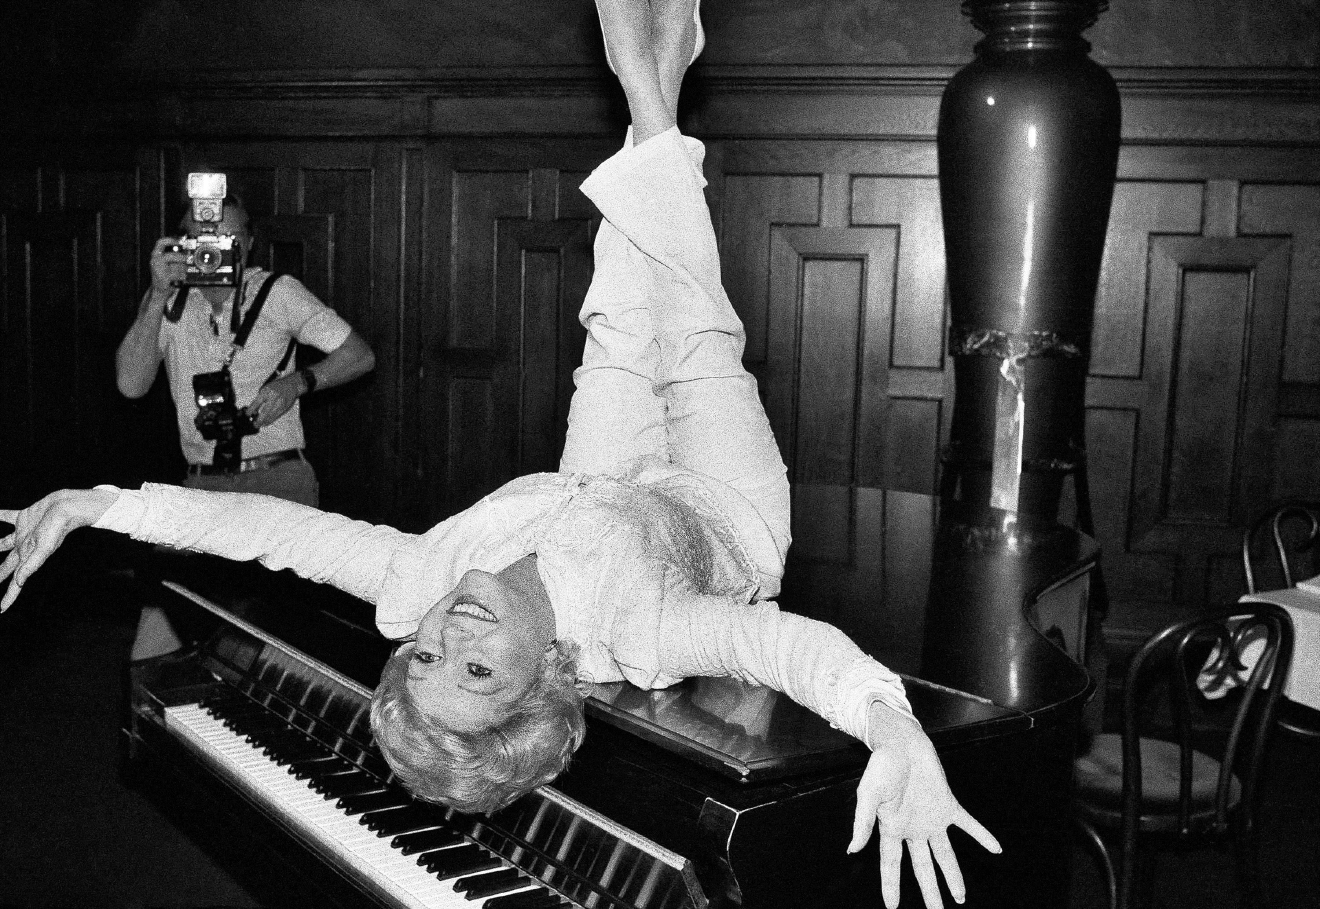 Actress Debbie Reynolds poses on a grand piano at a New York restaurant, Tuesday, Sept. 8, 1982 as she promotes the revival of the hit musical ?The Unsinkable Molly Brown? which will end up on Broadway next summer after an extensive national tour. Debbie played the title role in the Hollywood version of the play. (AP Photo/Marty Lederhandler)